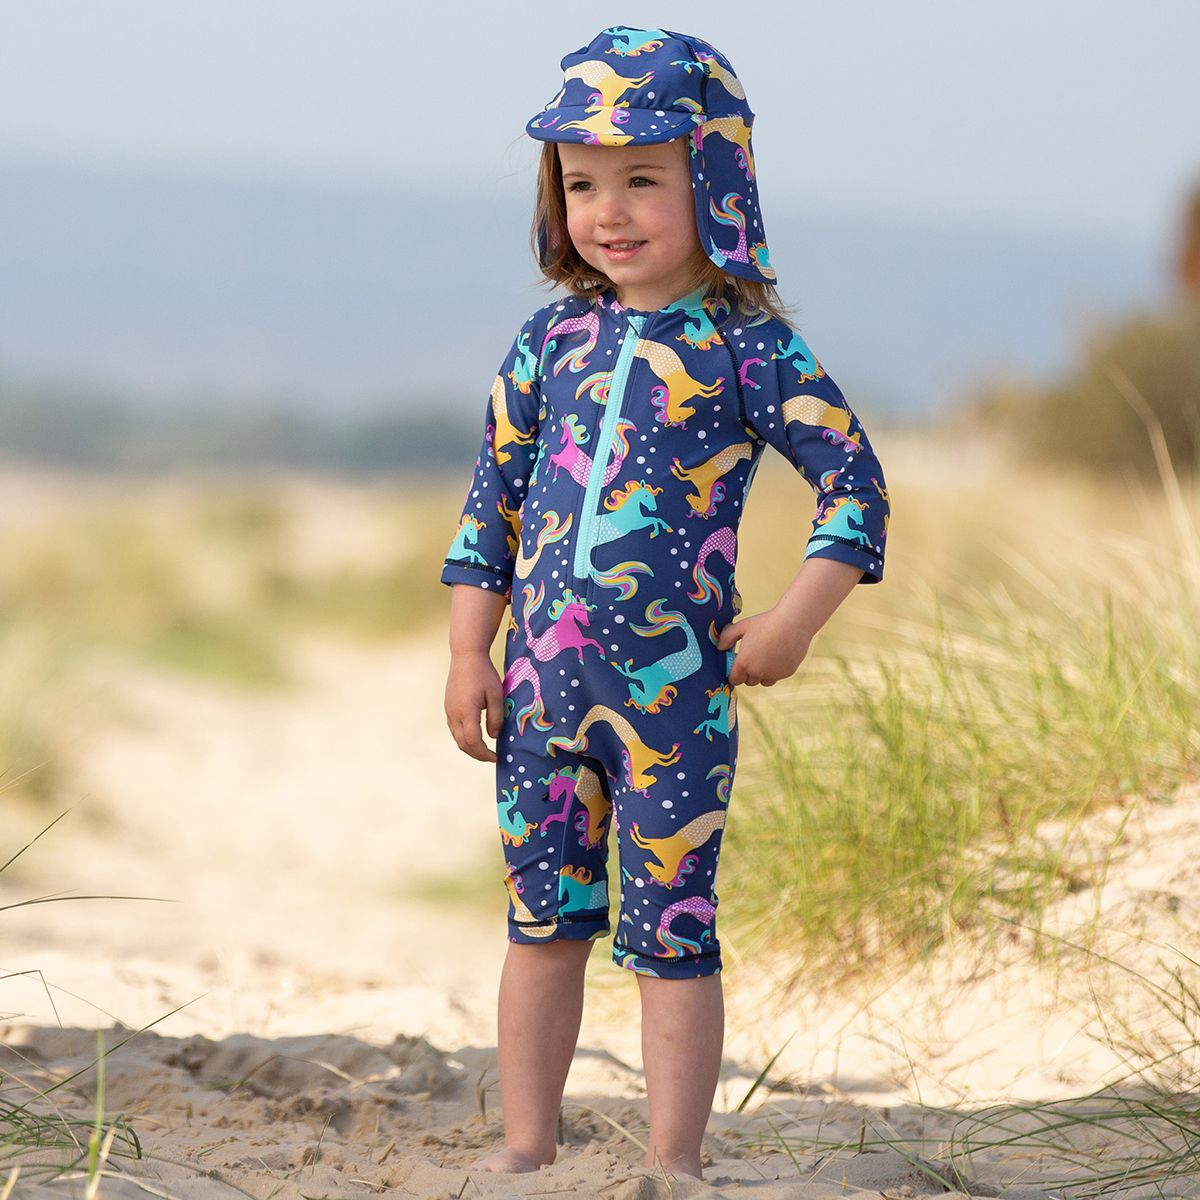 6b23ebc47d4c2 kite-organic-merhorse-swimwear-sunsuit-beachwear-navy-alloverprint